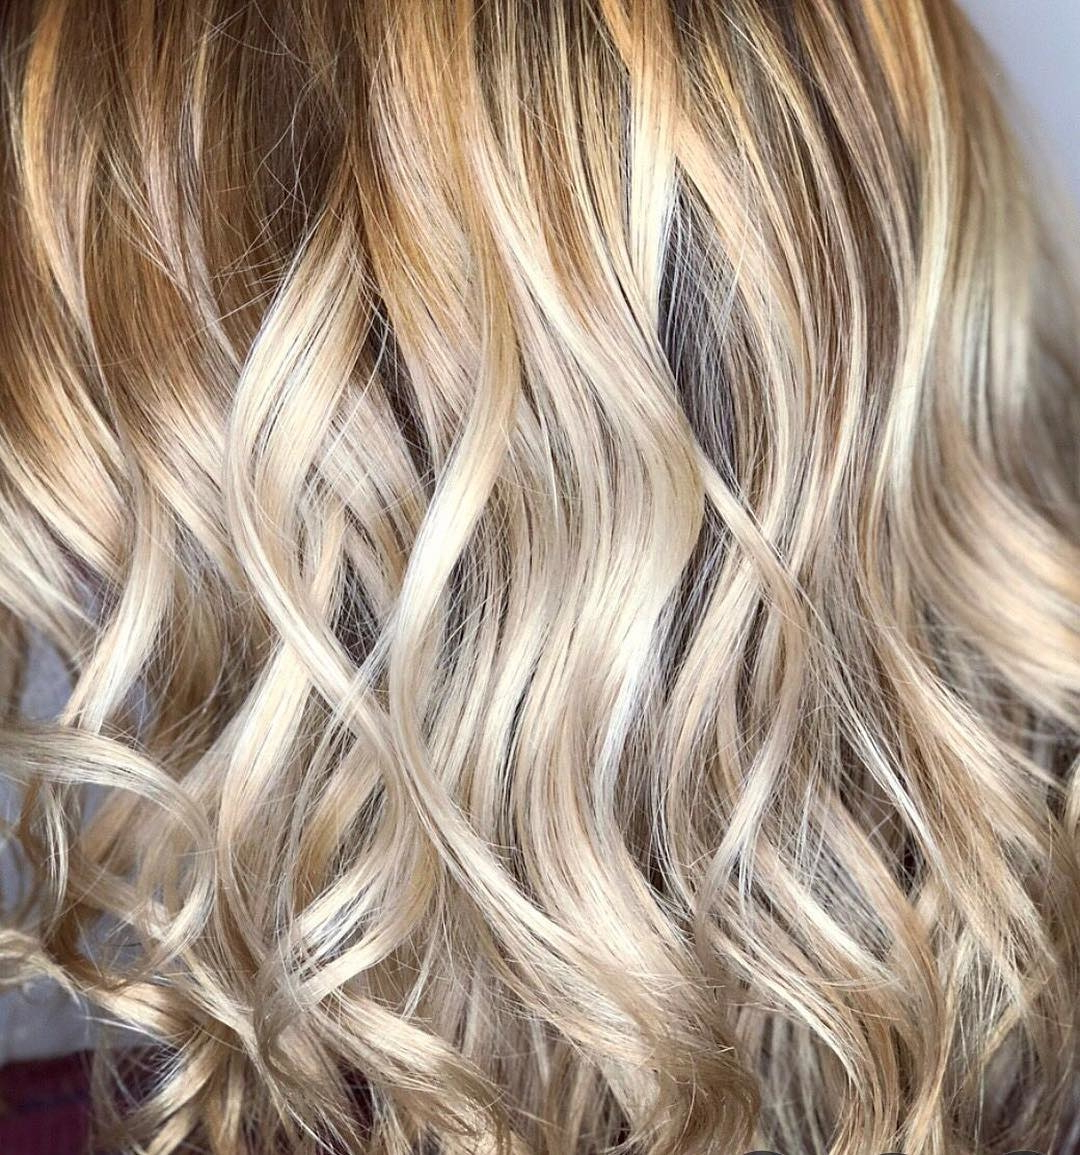 Well Known Blonde Balayage On Long Voluminous Hairstyles For 20 Balayage Brown To Blonde Long Hairstyles – Hair Colour (View 10 of 20)